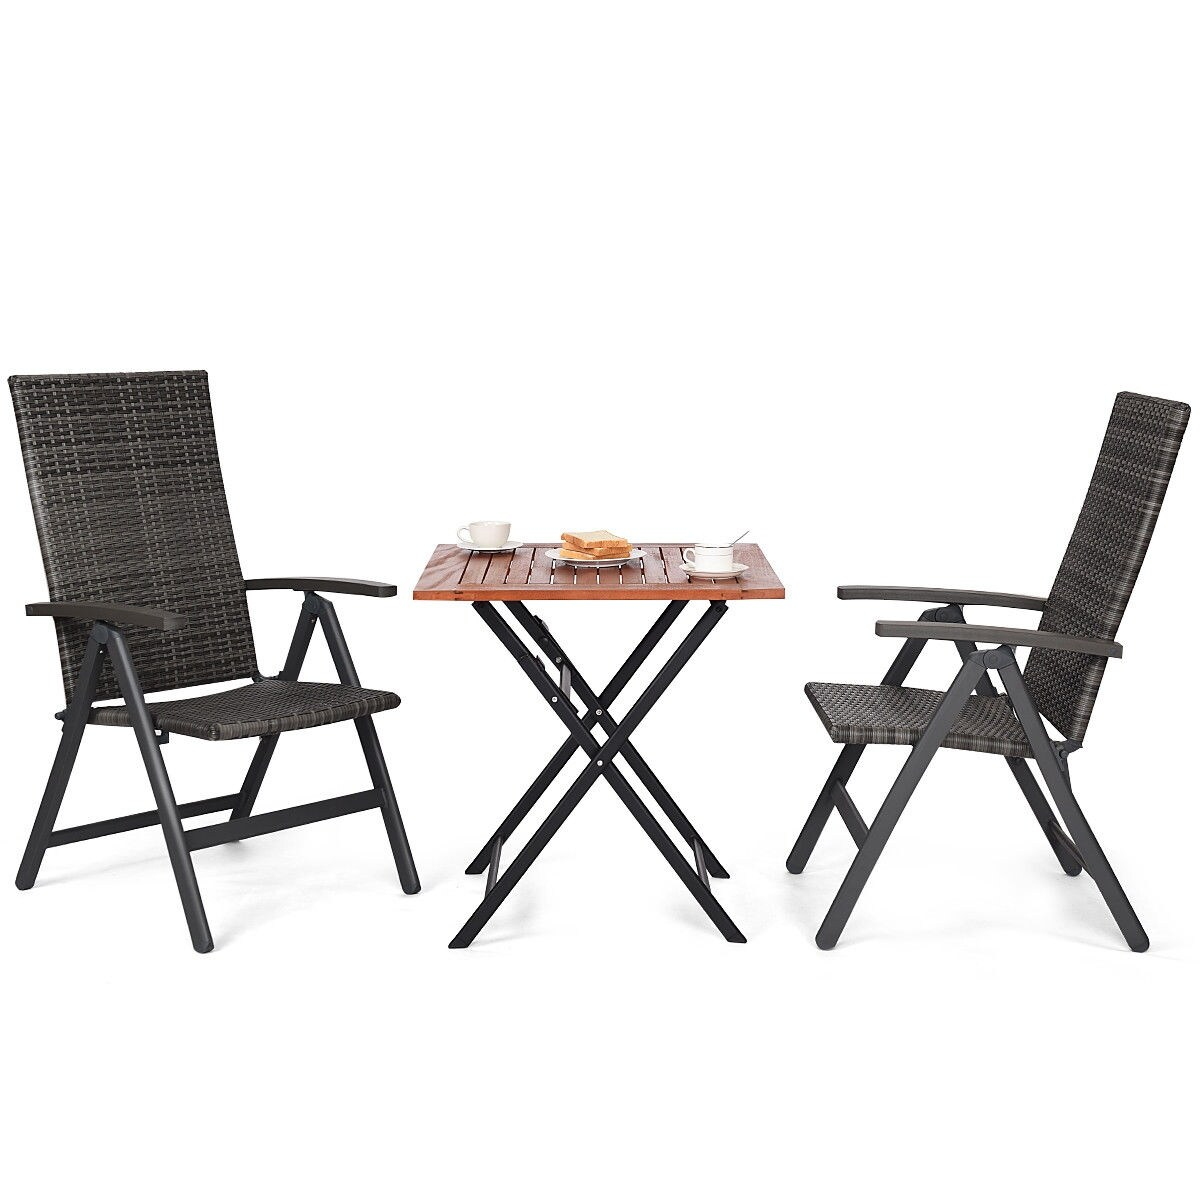 Swell Costway 3Pcs Patio Rattan Folding Reclining Chairs Table Set Indoor Outdoor Furniture Set Of 3 Creativecarmelina Interior Chair Design Creativecarmelinacom